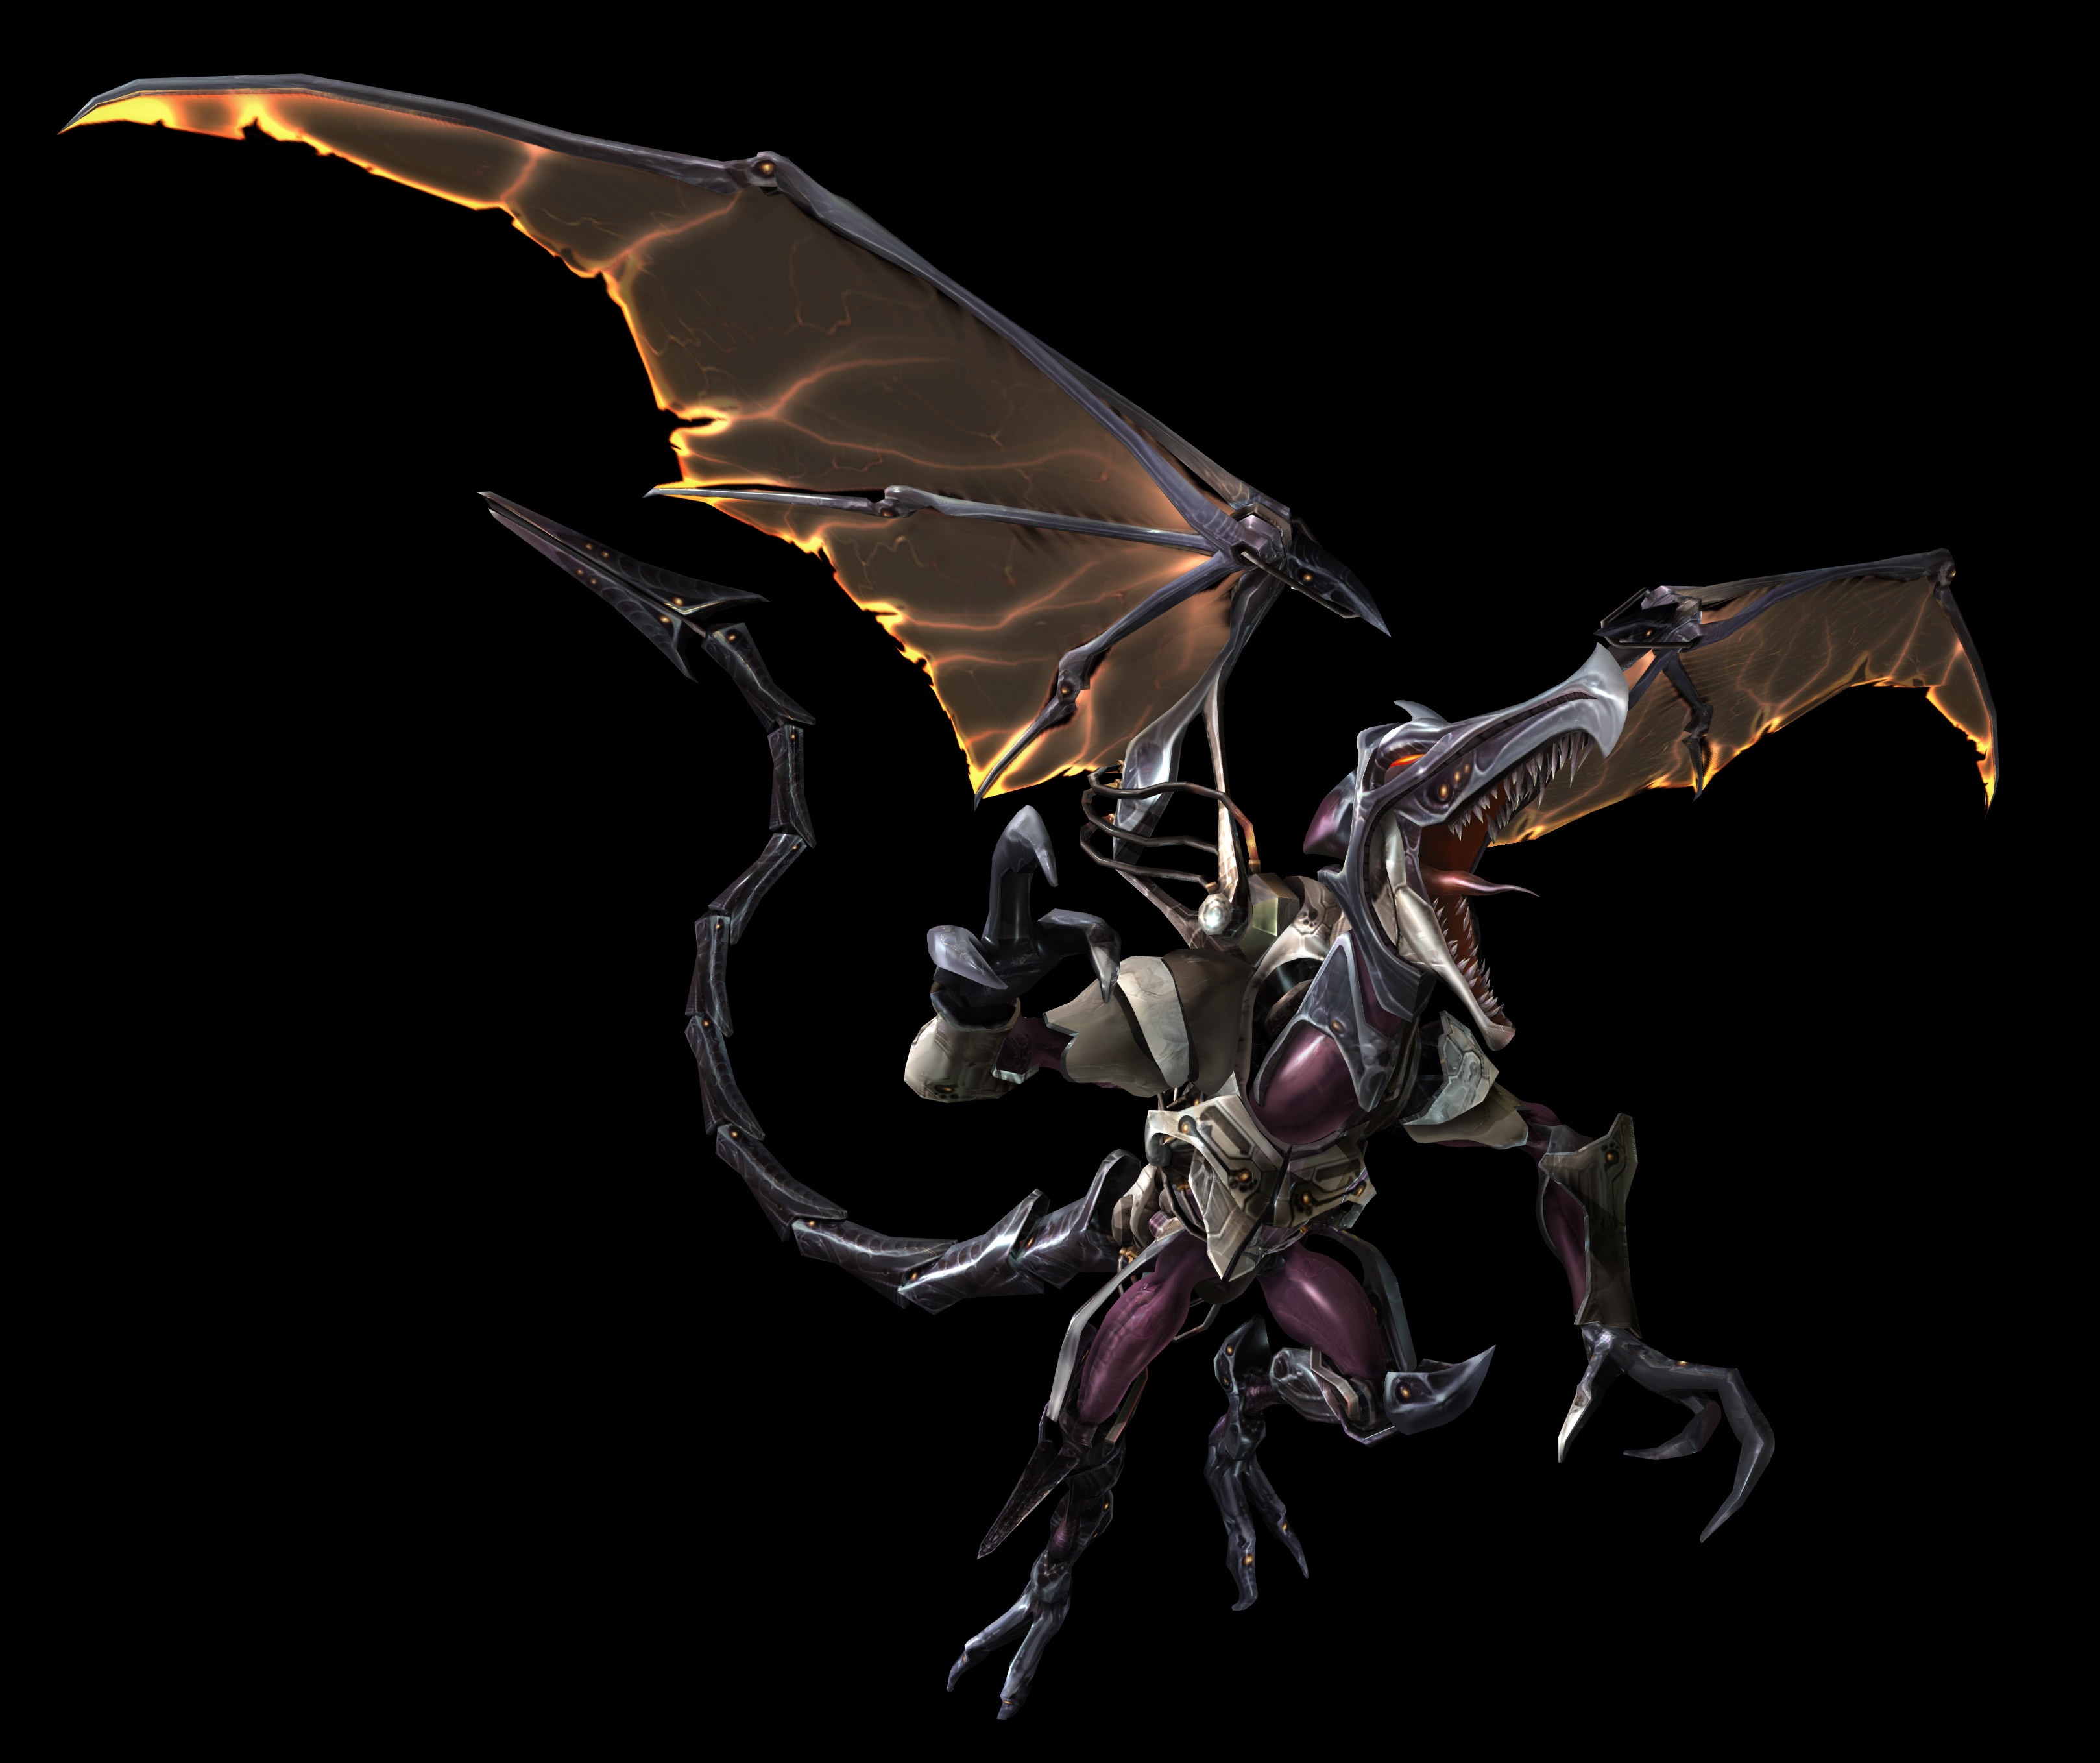 Omega Ridley